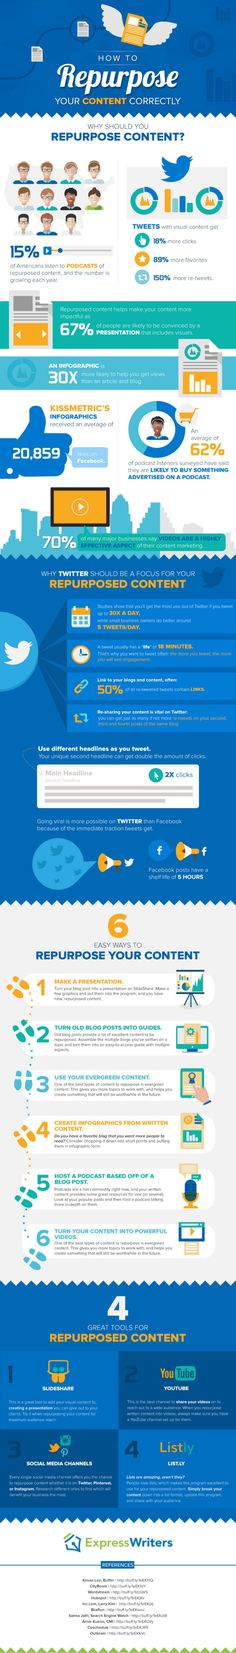 How to repurpose your content correctly #INFOGRAPHIC #MARKETING